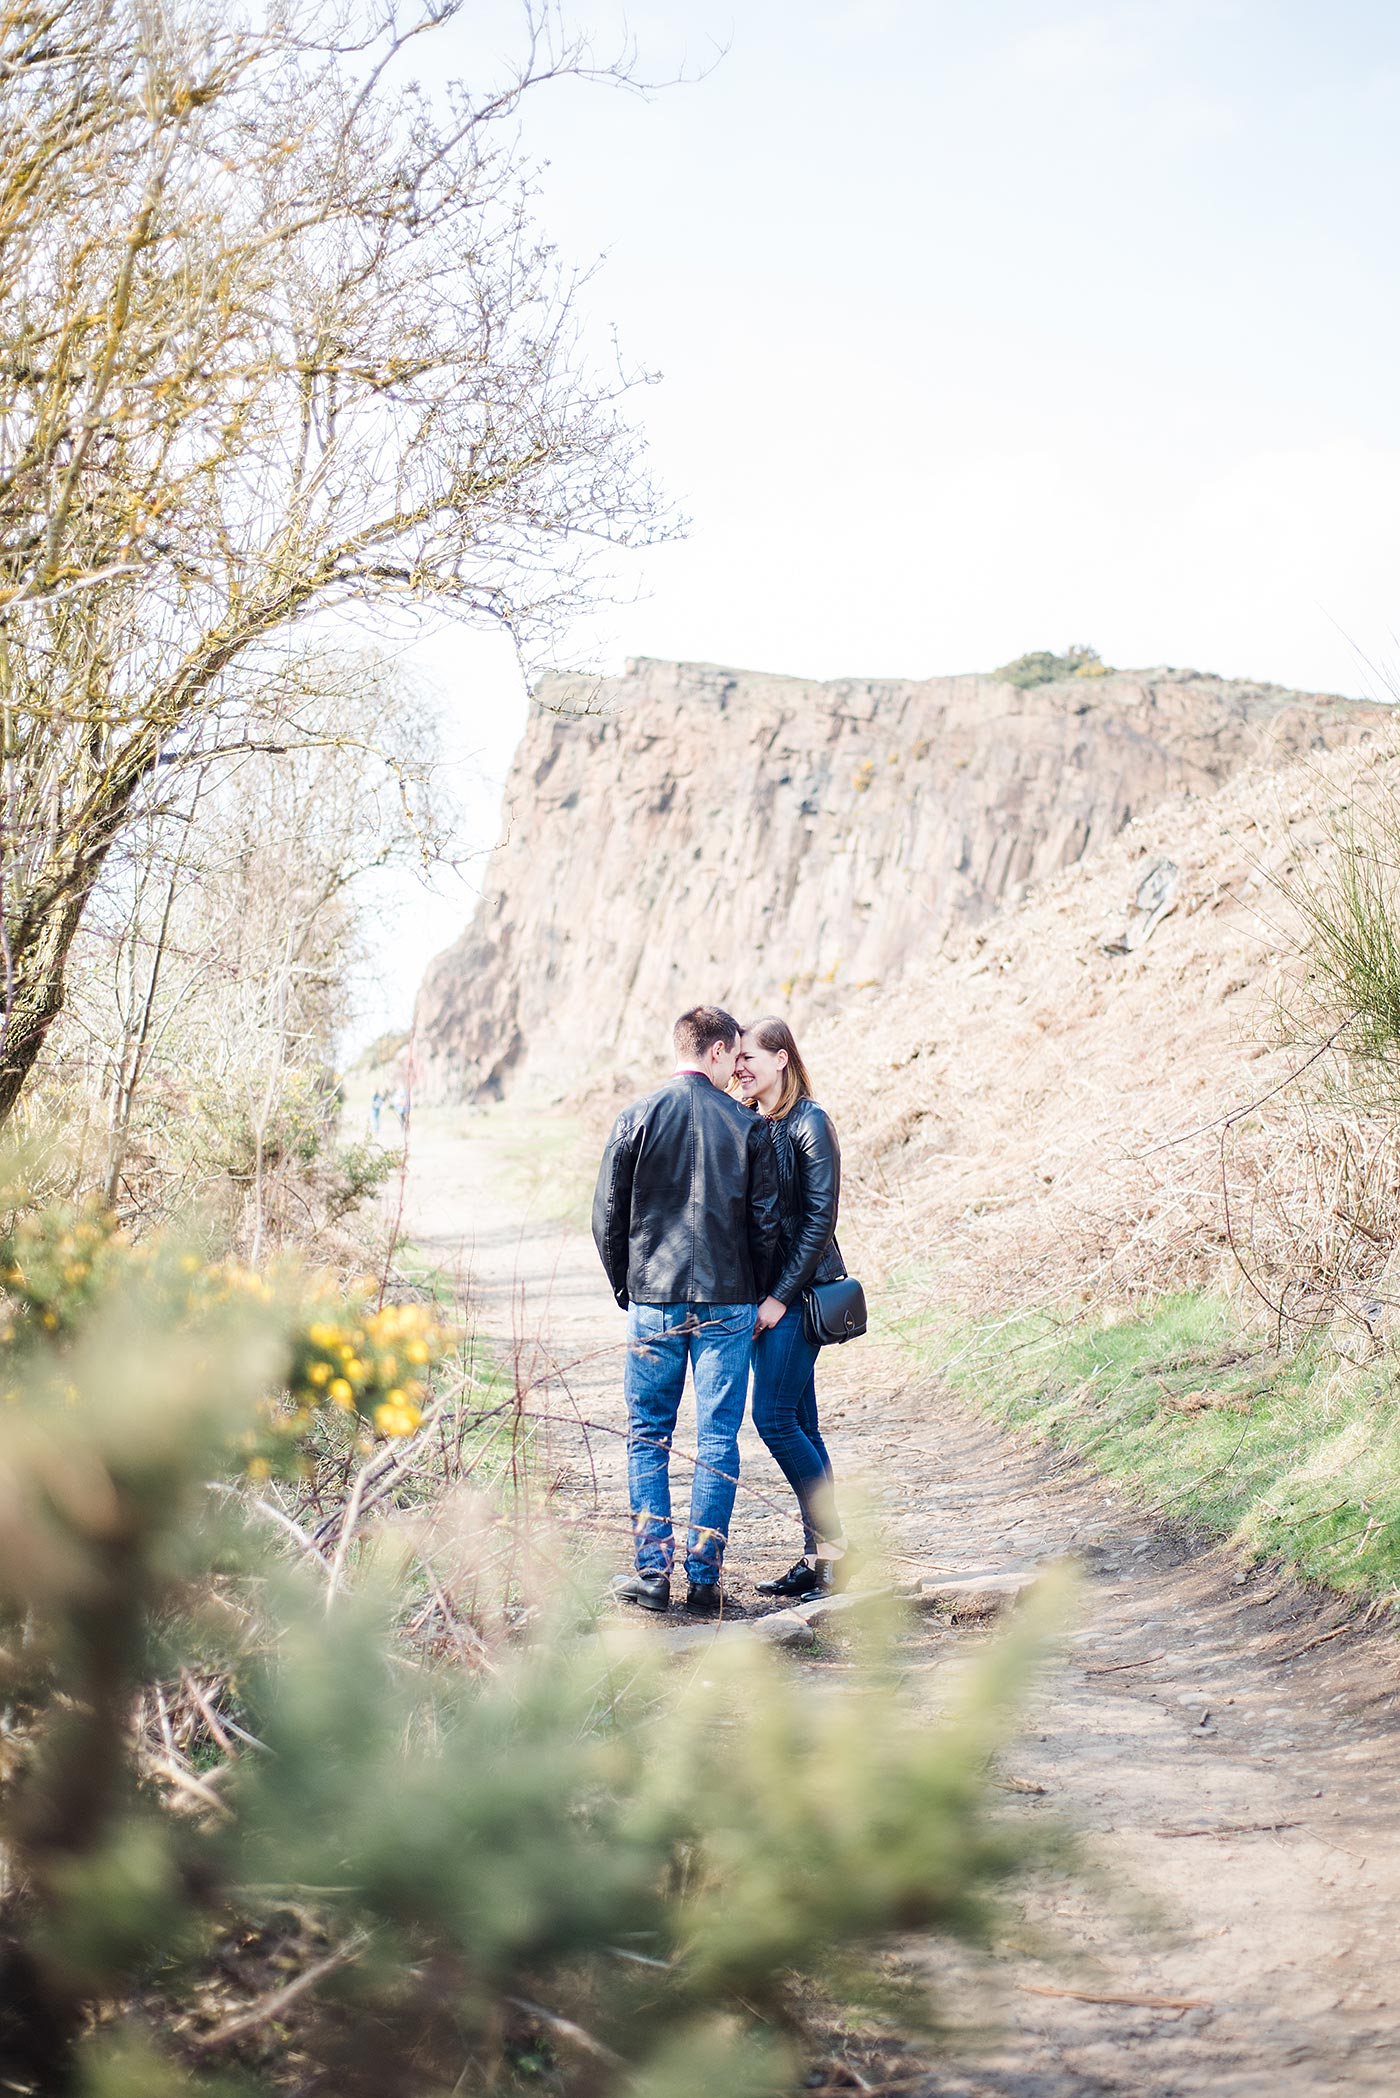 Proposal Photographs Edinburgh Salisbury Crags